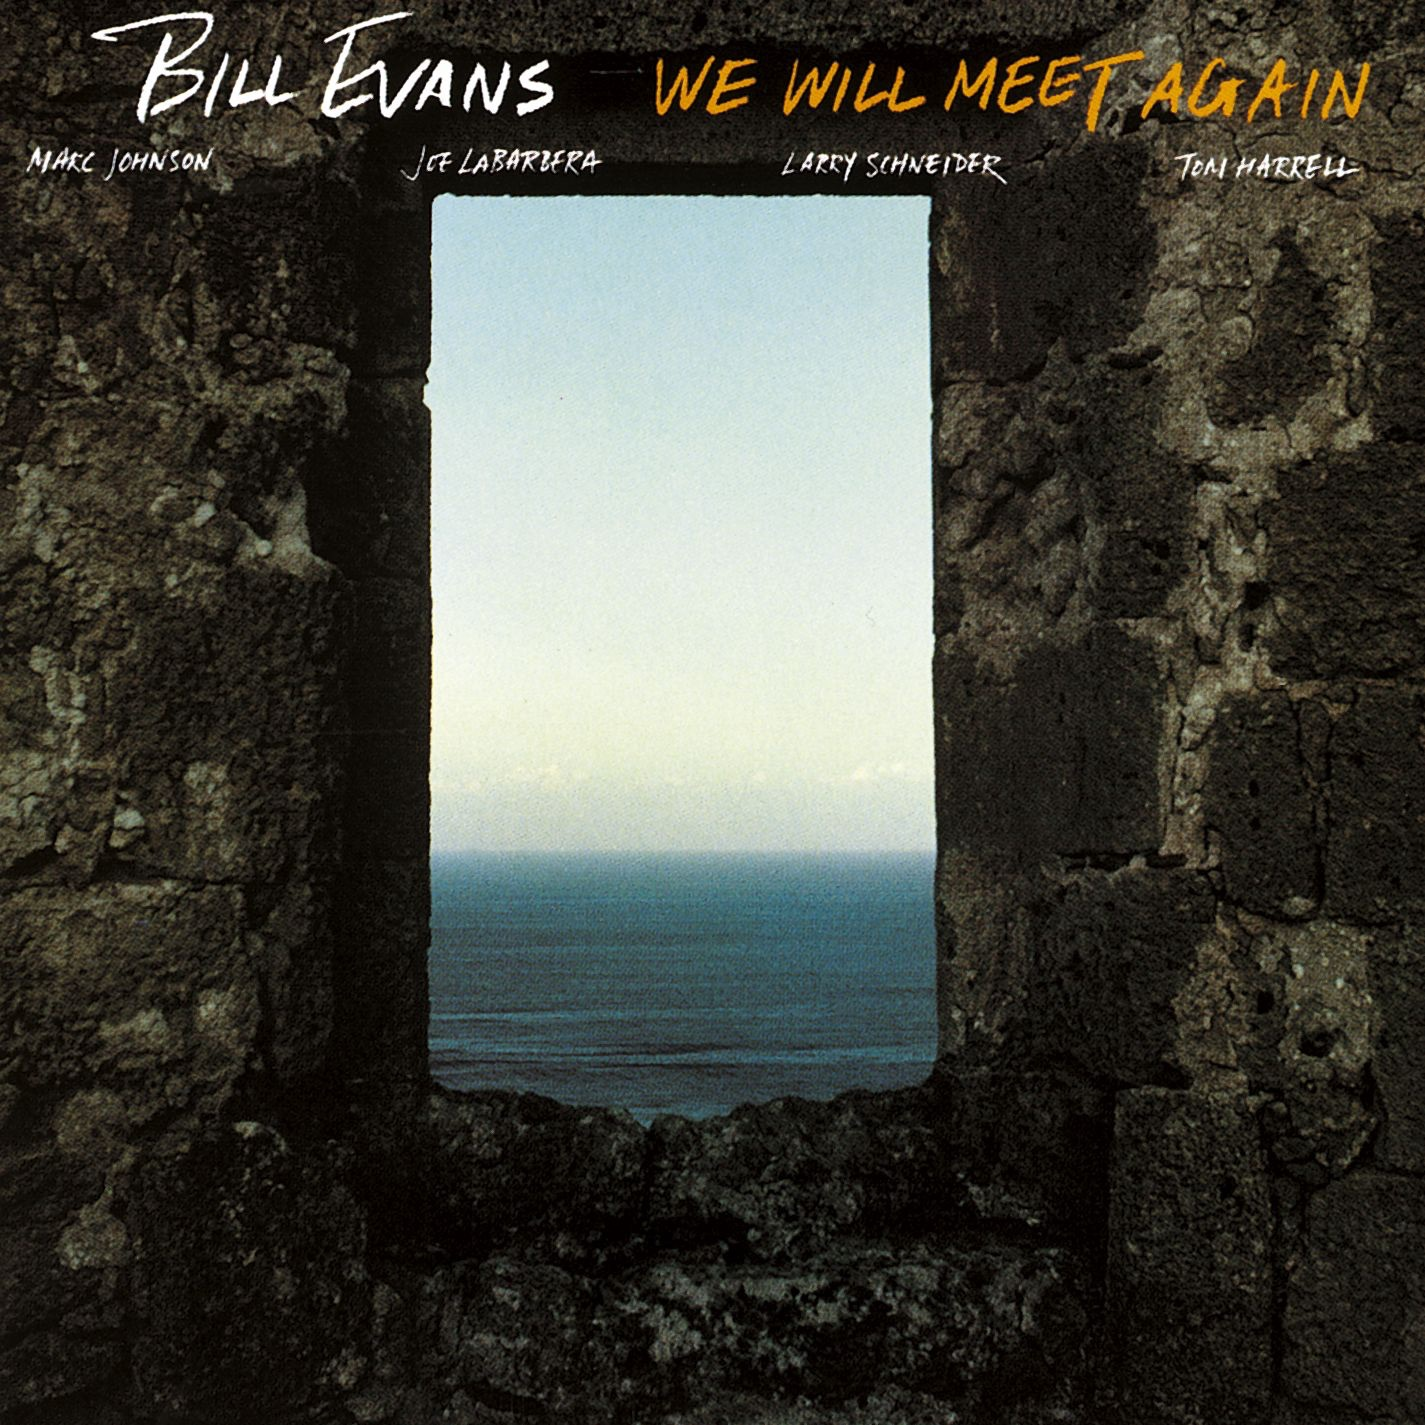 soundtrack to meet bill